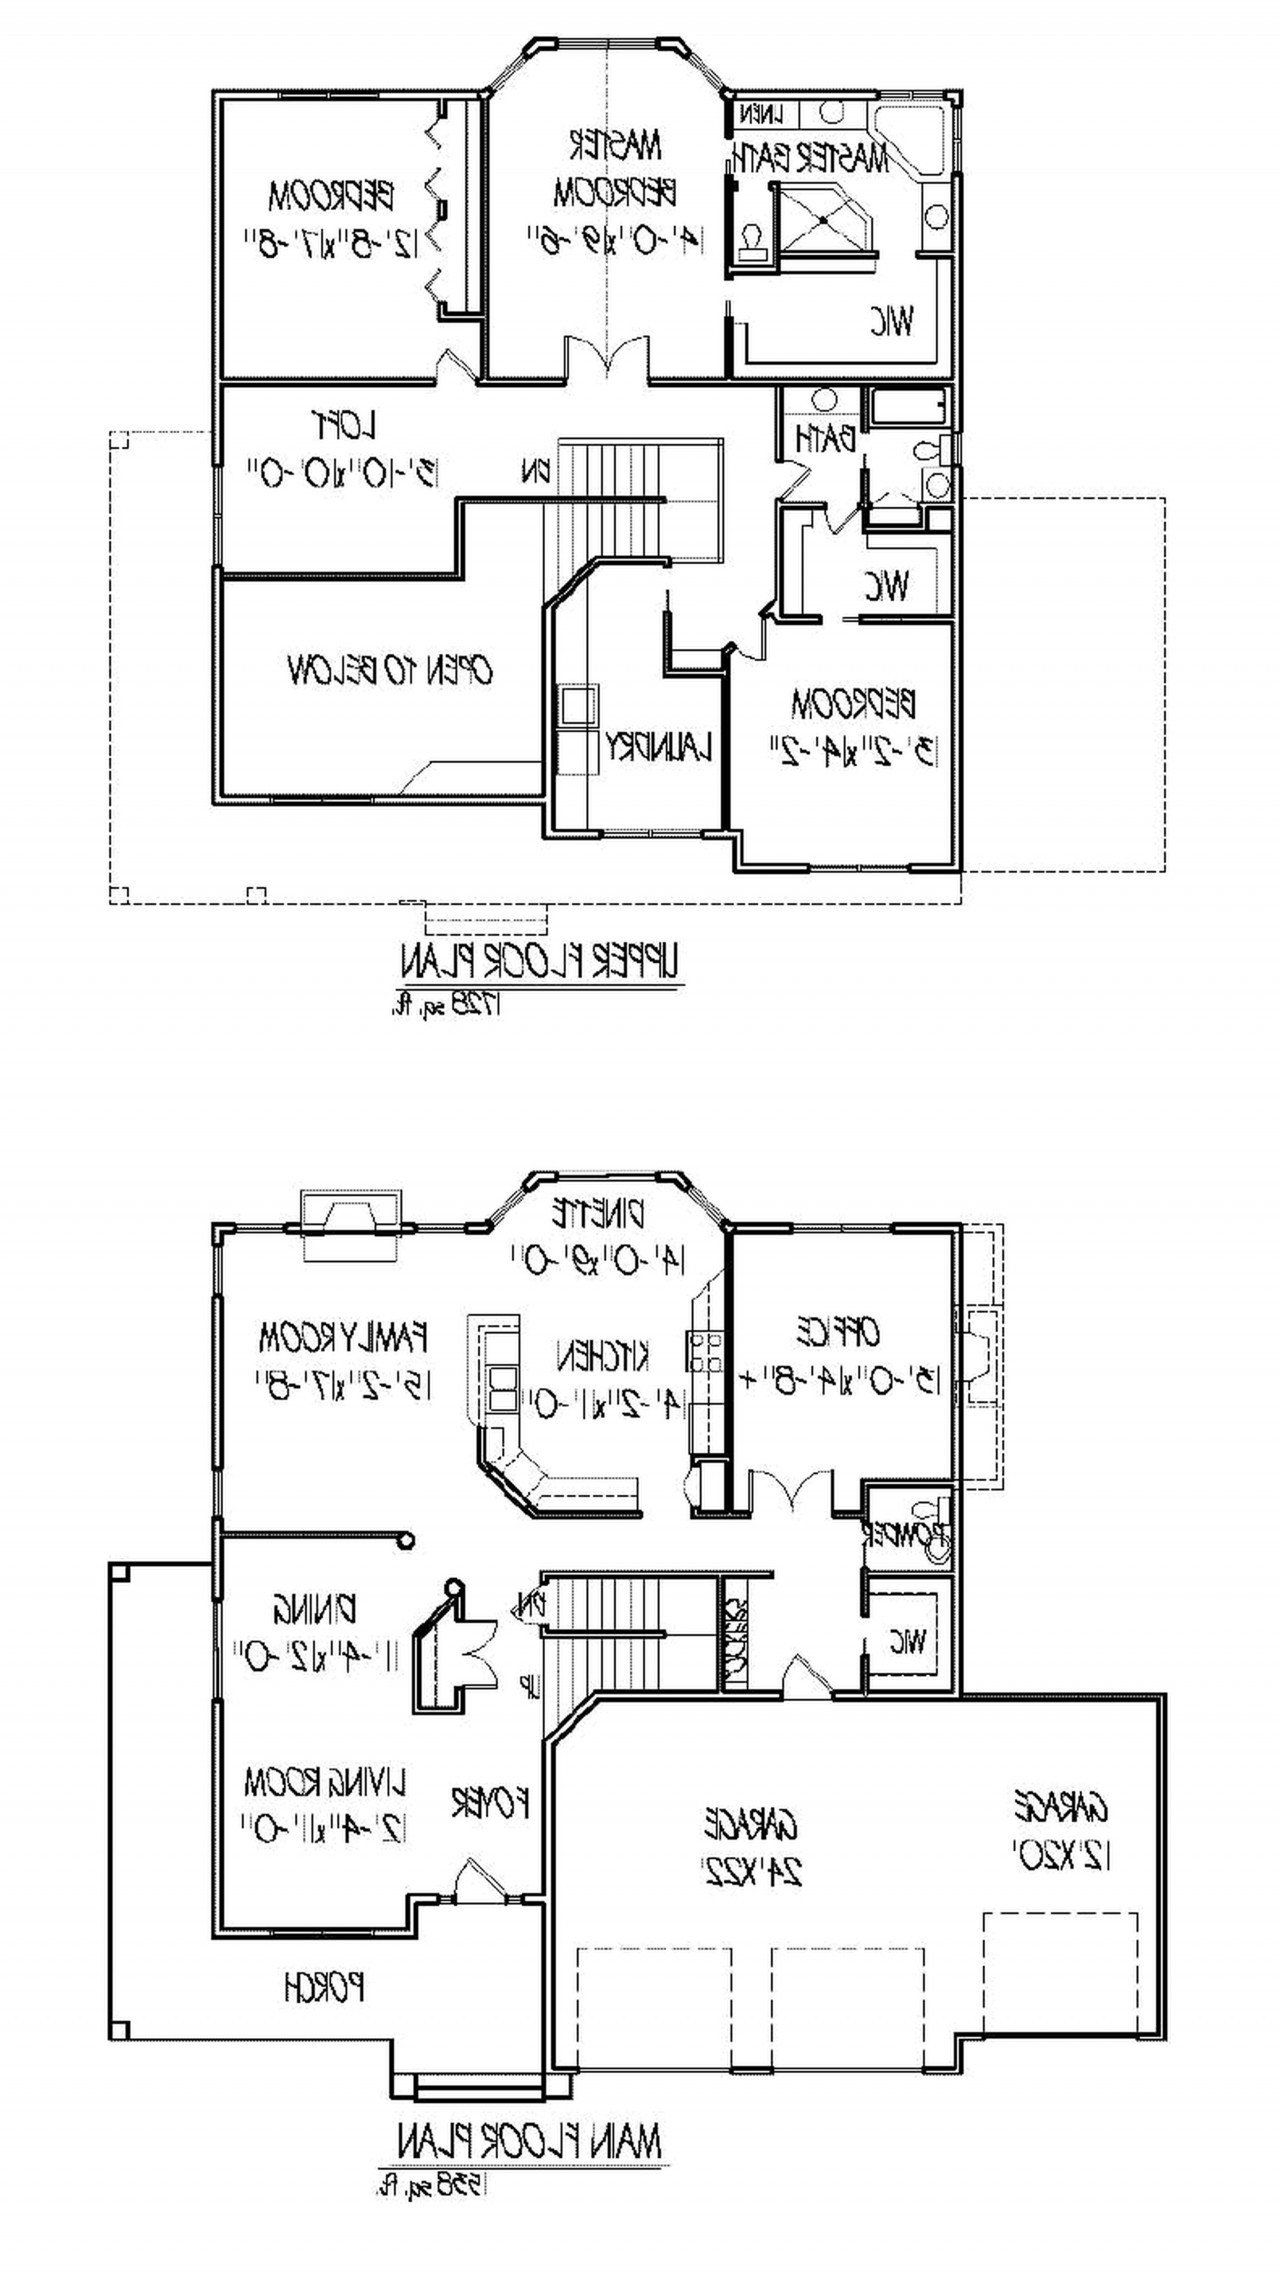 Free Modern House Plans Uk Feet Mediterranean House Plans Two Story Narrow Fresh Small In 2020 Home Design Floor Plans Two Story House Plans House Plans Uk